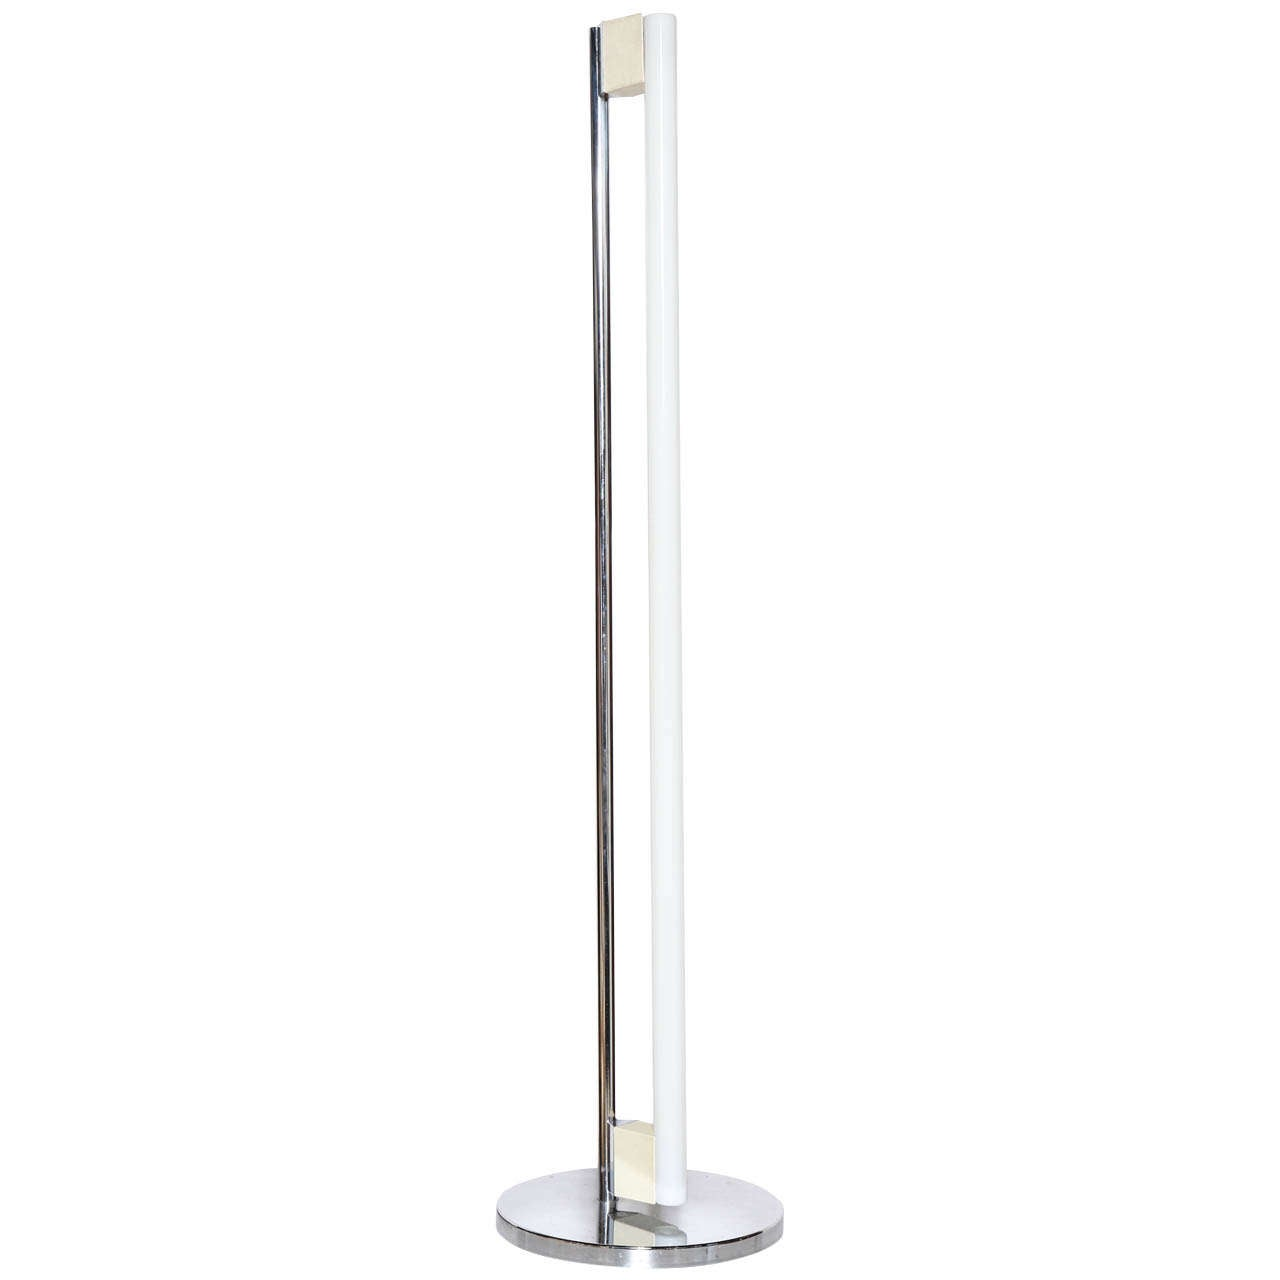 1960s eileen gray designed chrome and fluorescent tube floor lamp 1960s eileen gray designed chrome and fluorescent tube floor lamp for sale aloadofball Images